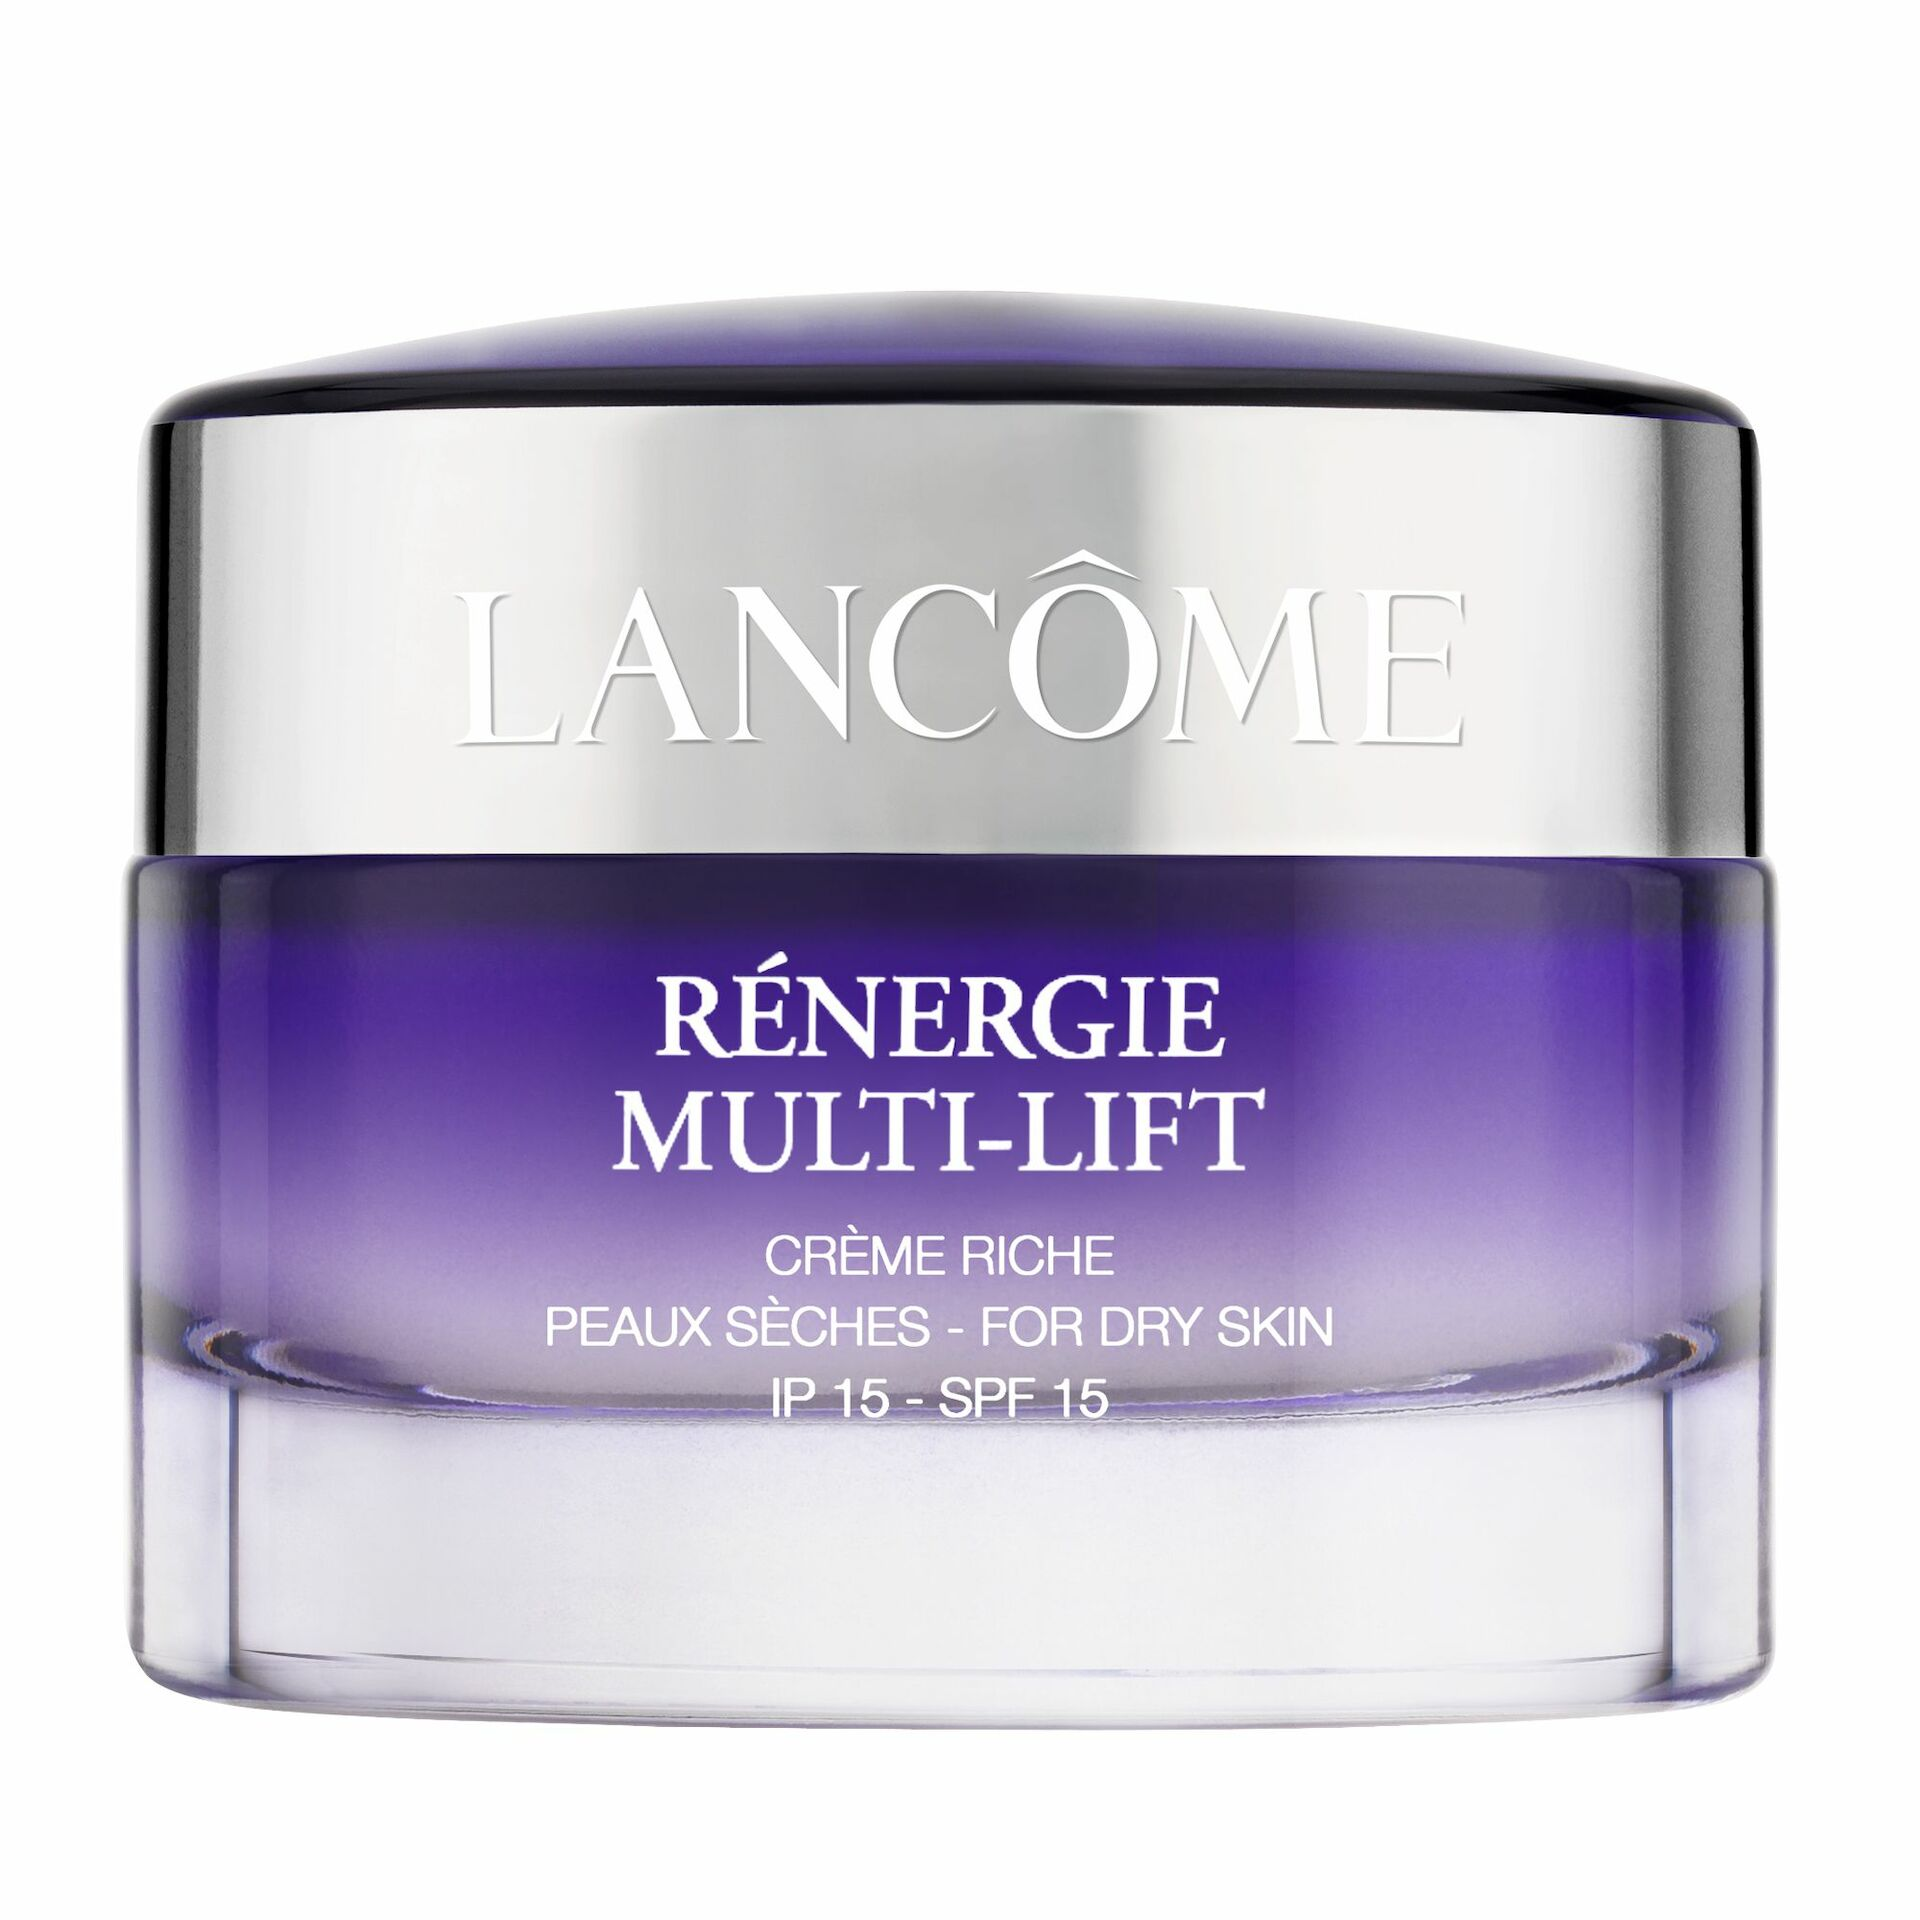 Rénergie Multi-Lift Créme Riche SPF 15 - for dry skin